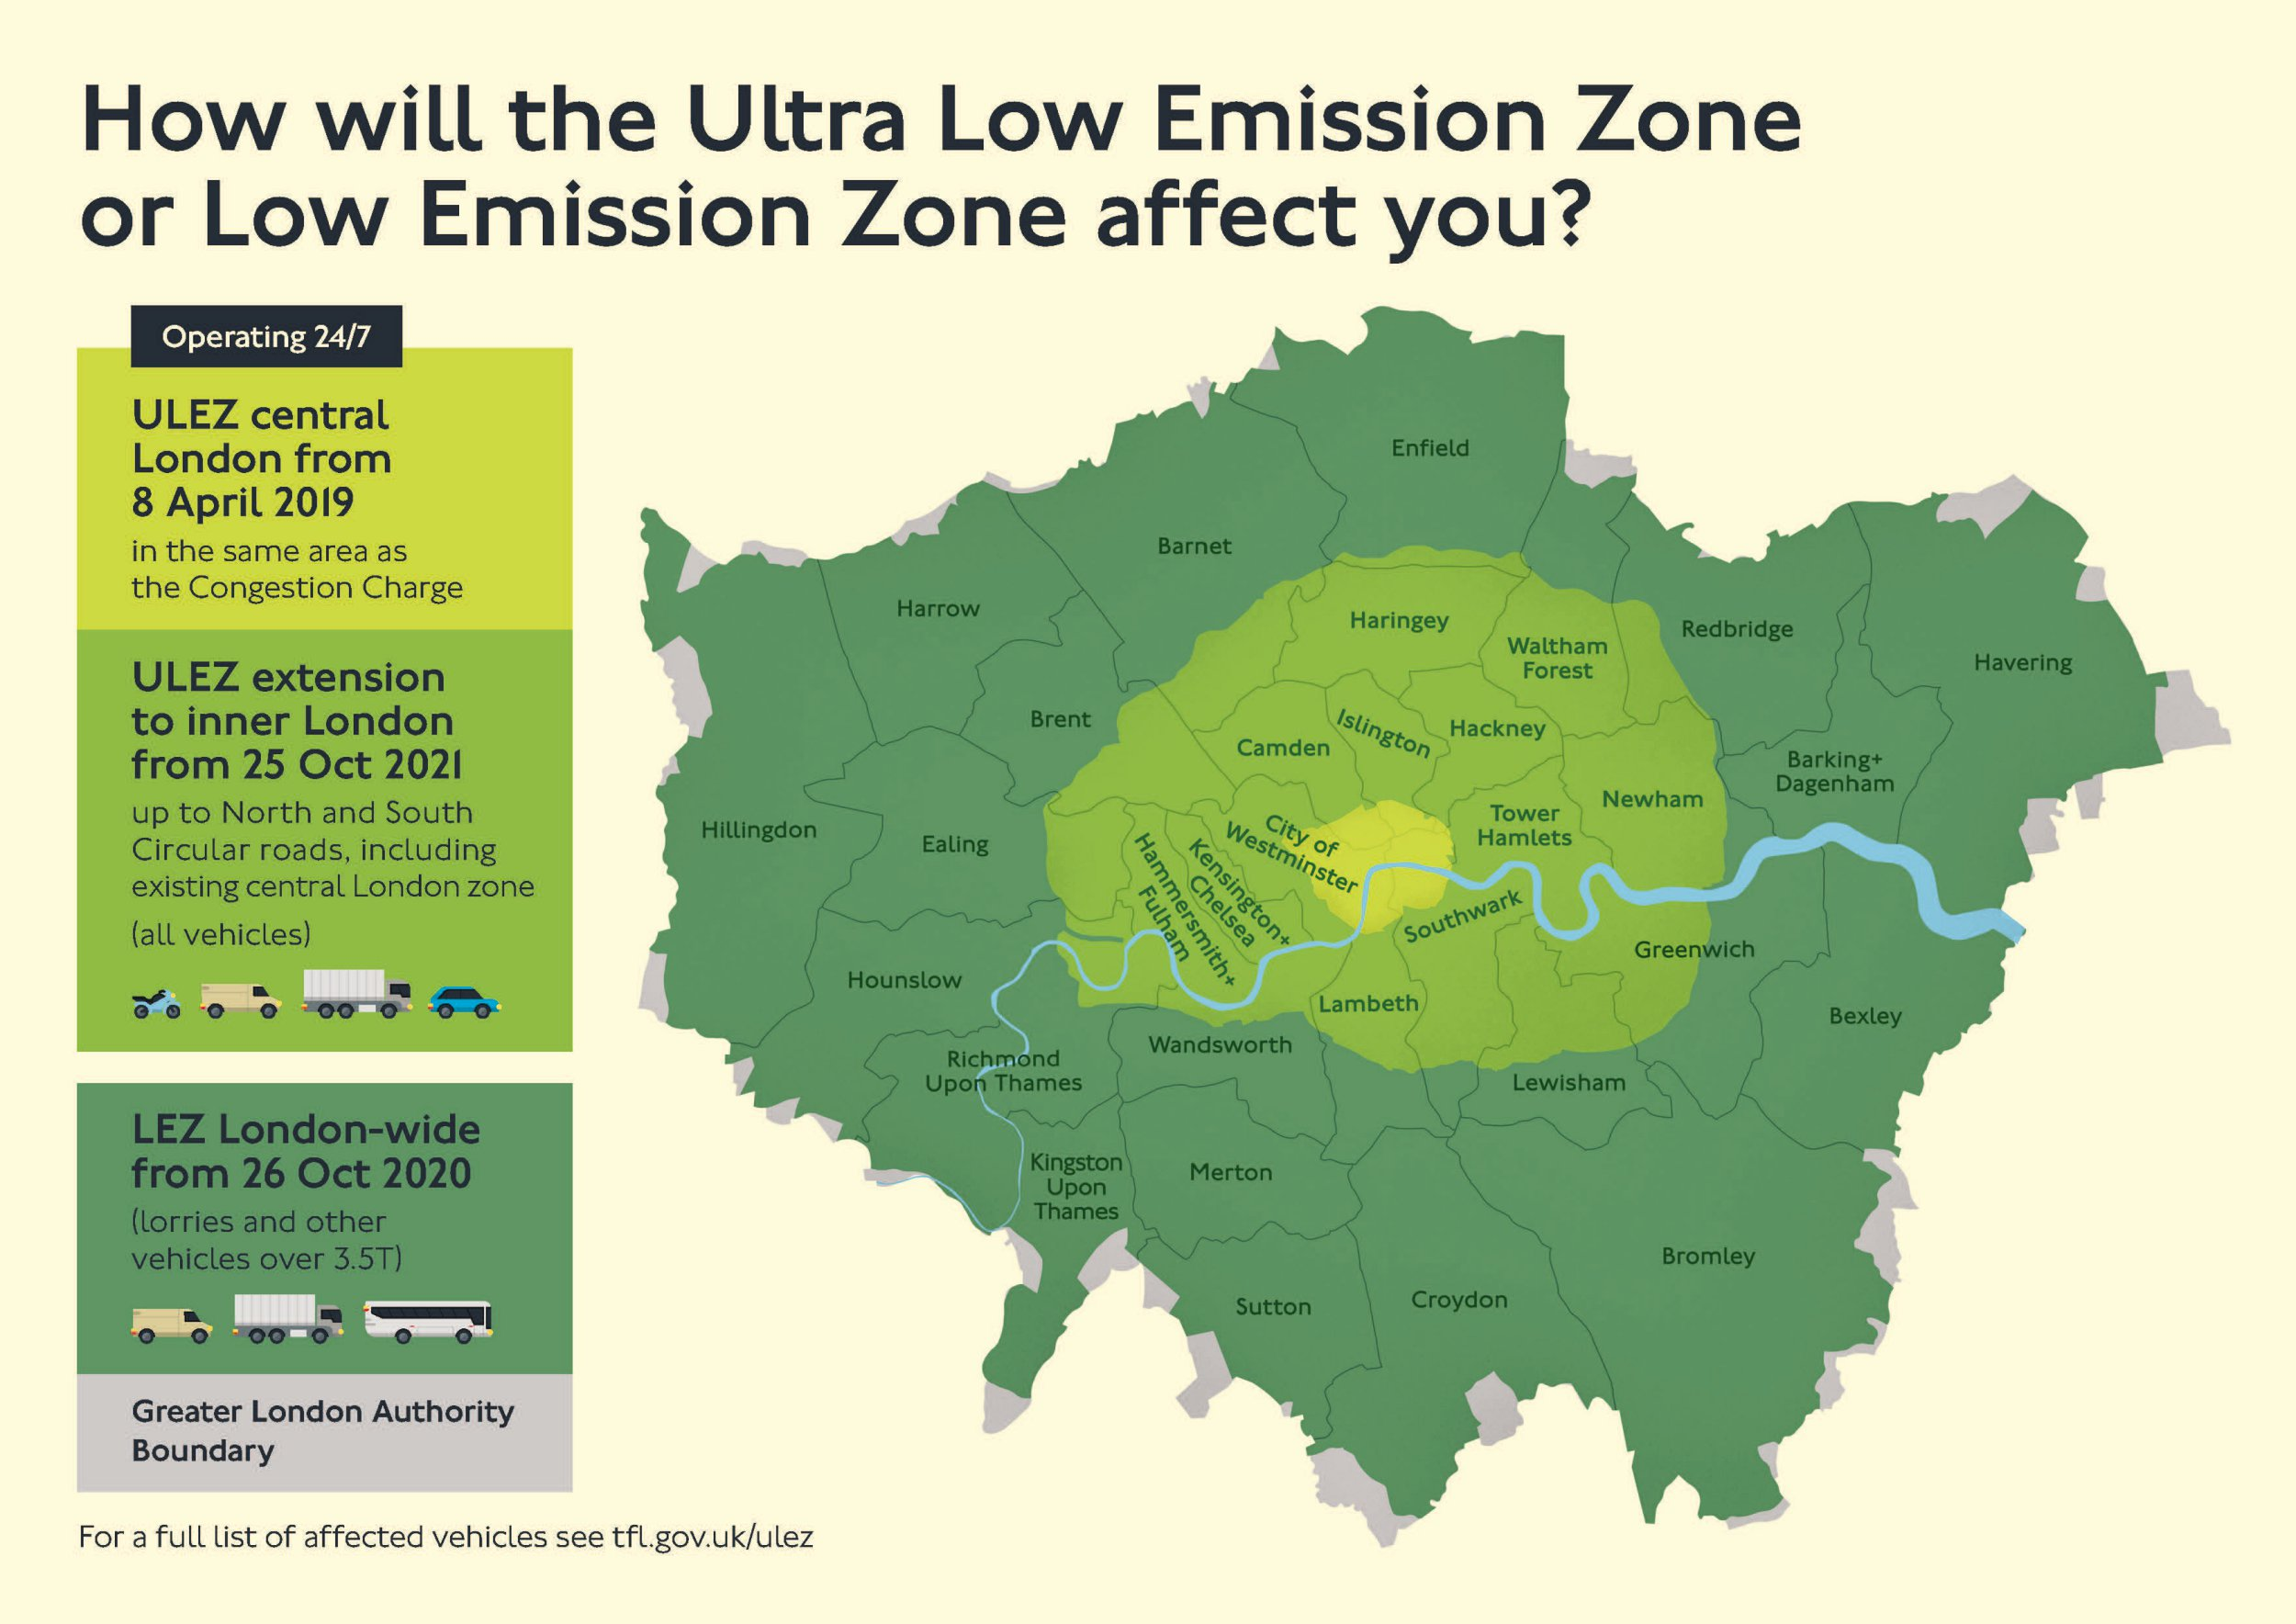 ULEZ boundary 2019-2021 (Graphic: TFL) The Ultra Low Emission Zone (ULEZ) will replace the T-Charge from 8 April 2019. It will operate 24 hours a day, 7 days a week, every day of the year, within the same area as the current Congestion Charging Zone (CCZ). From 25 October 2021 the area will expand to the inner London area bounded by the North and South Circular roads.